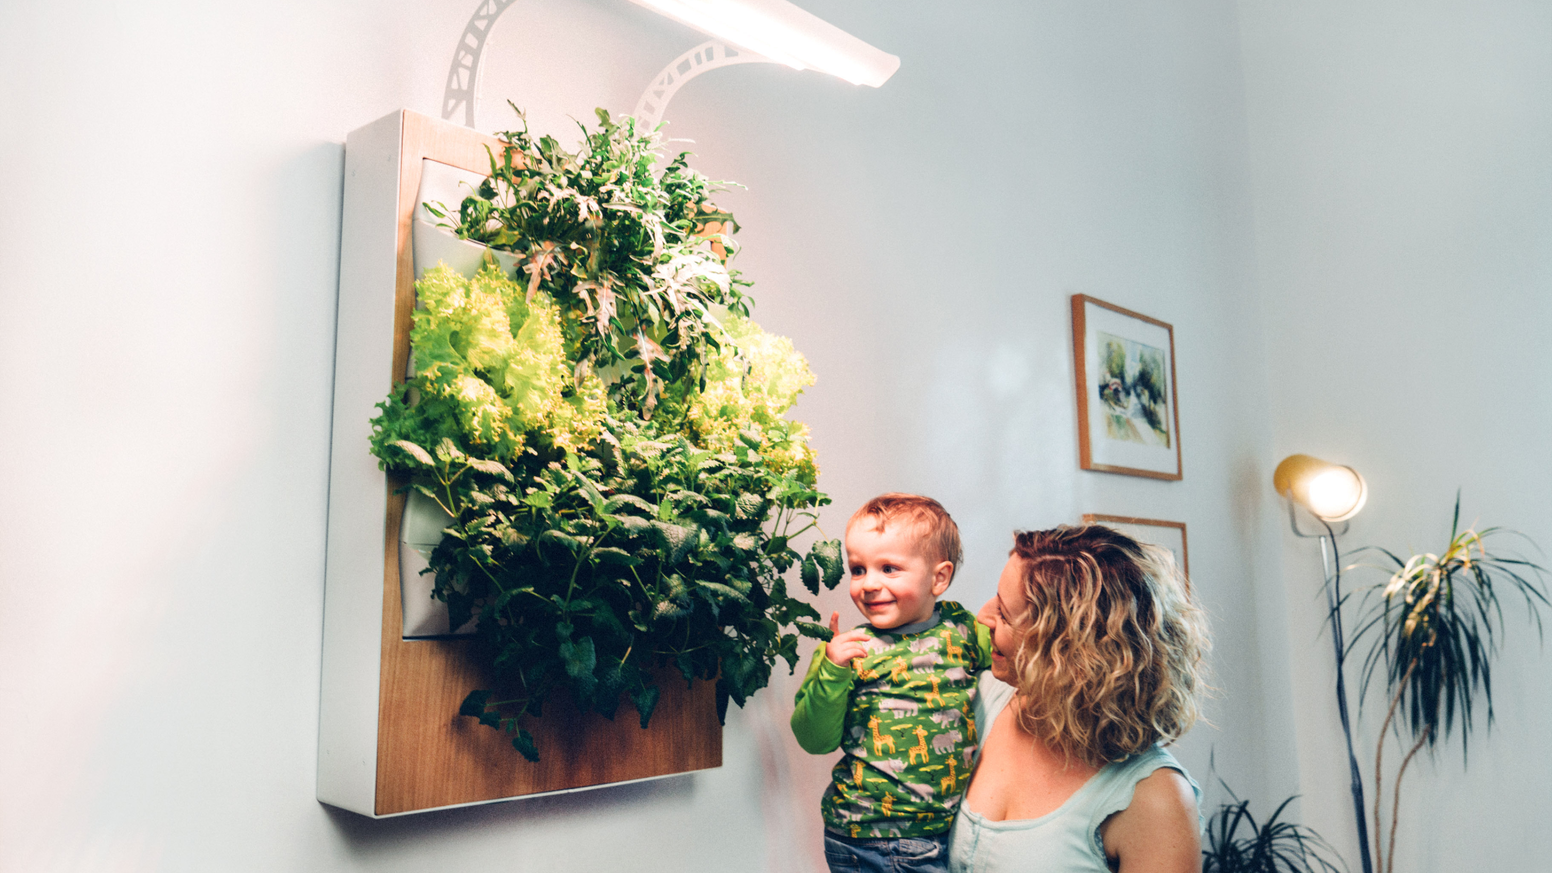 The Hydroponic Vertical Farm For Your Home Simple Clean And 40 More Efficient